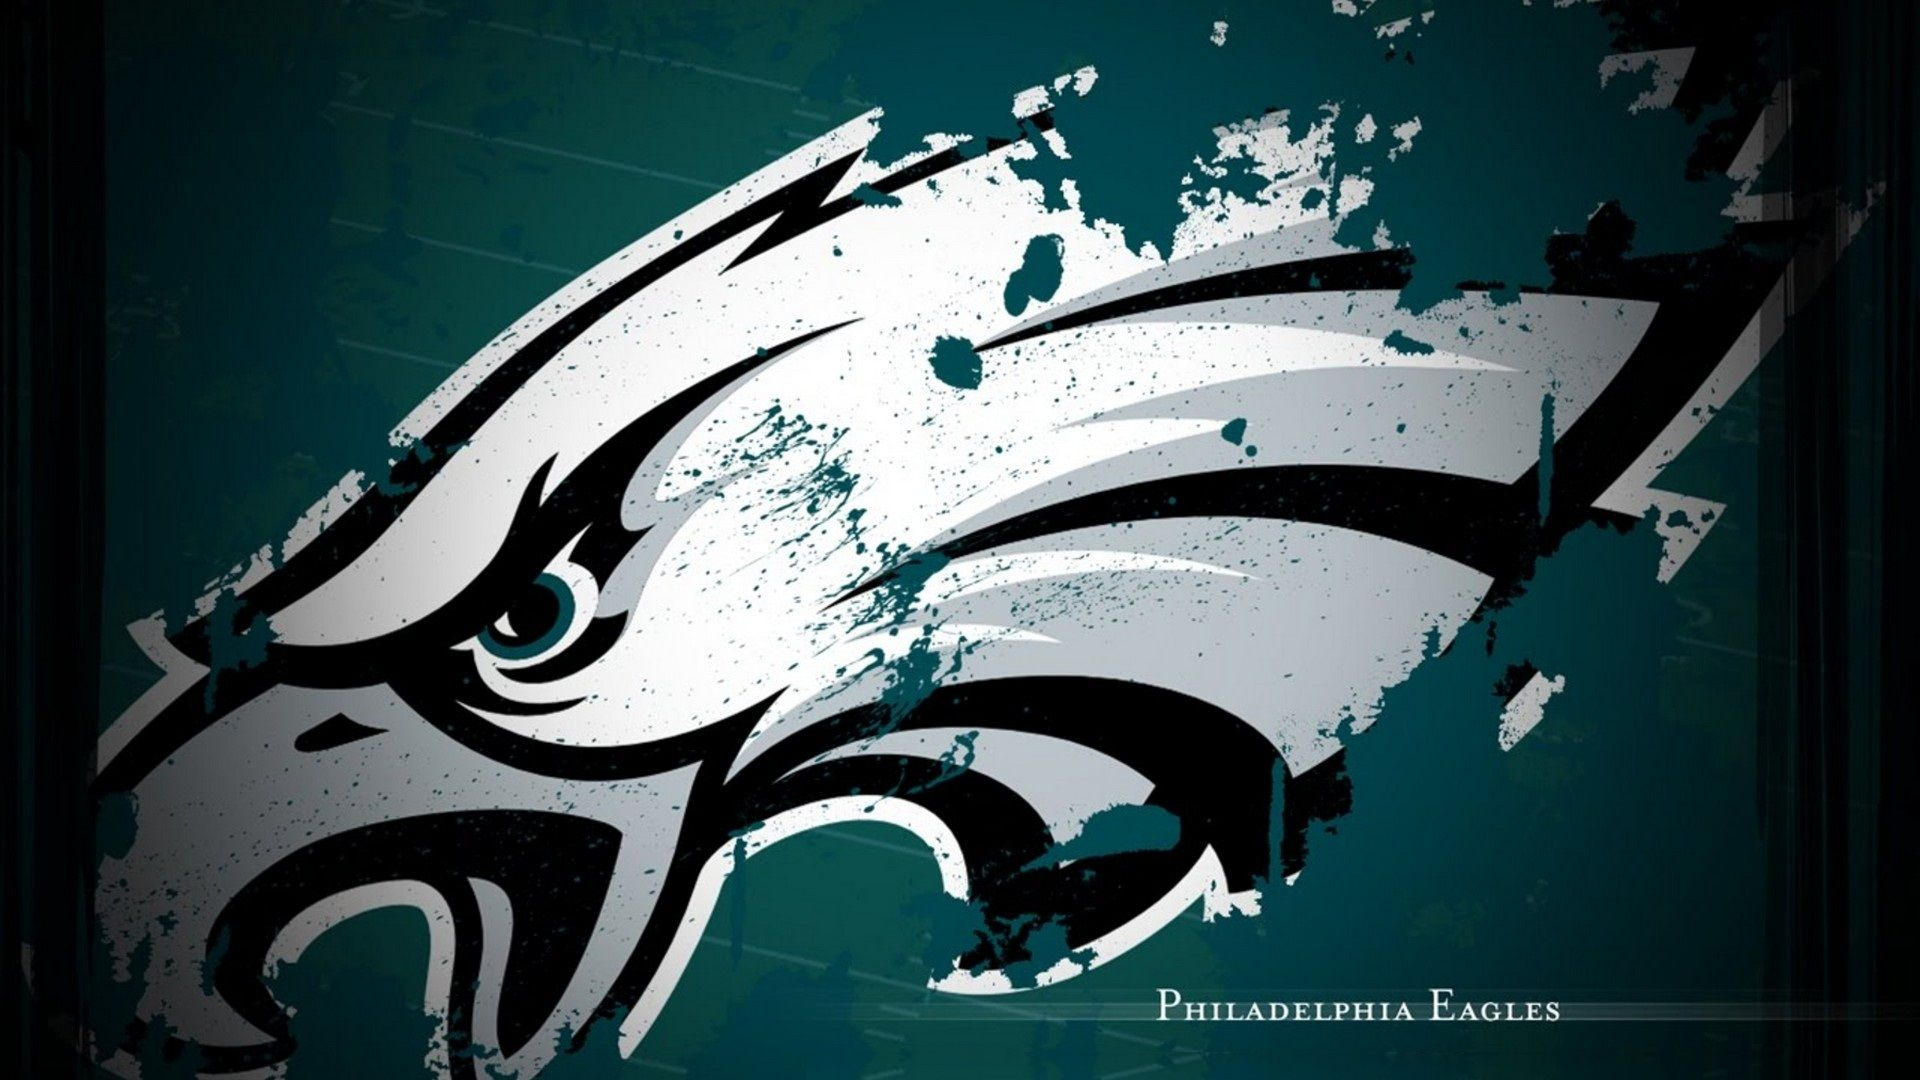 Philadelphia Eagles For PC Wallpaper Philadelphia eagles